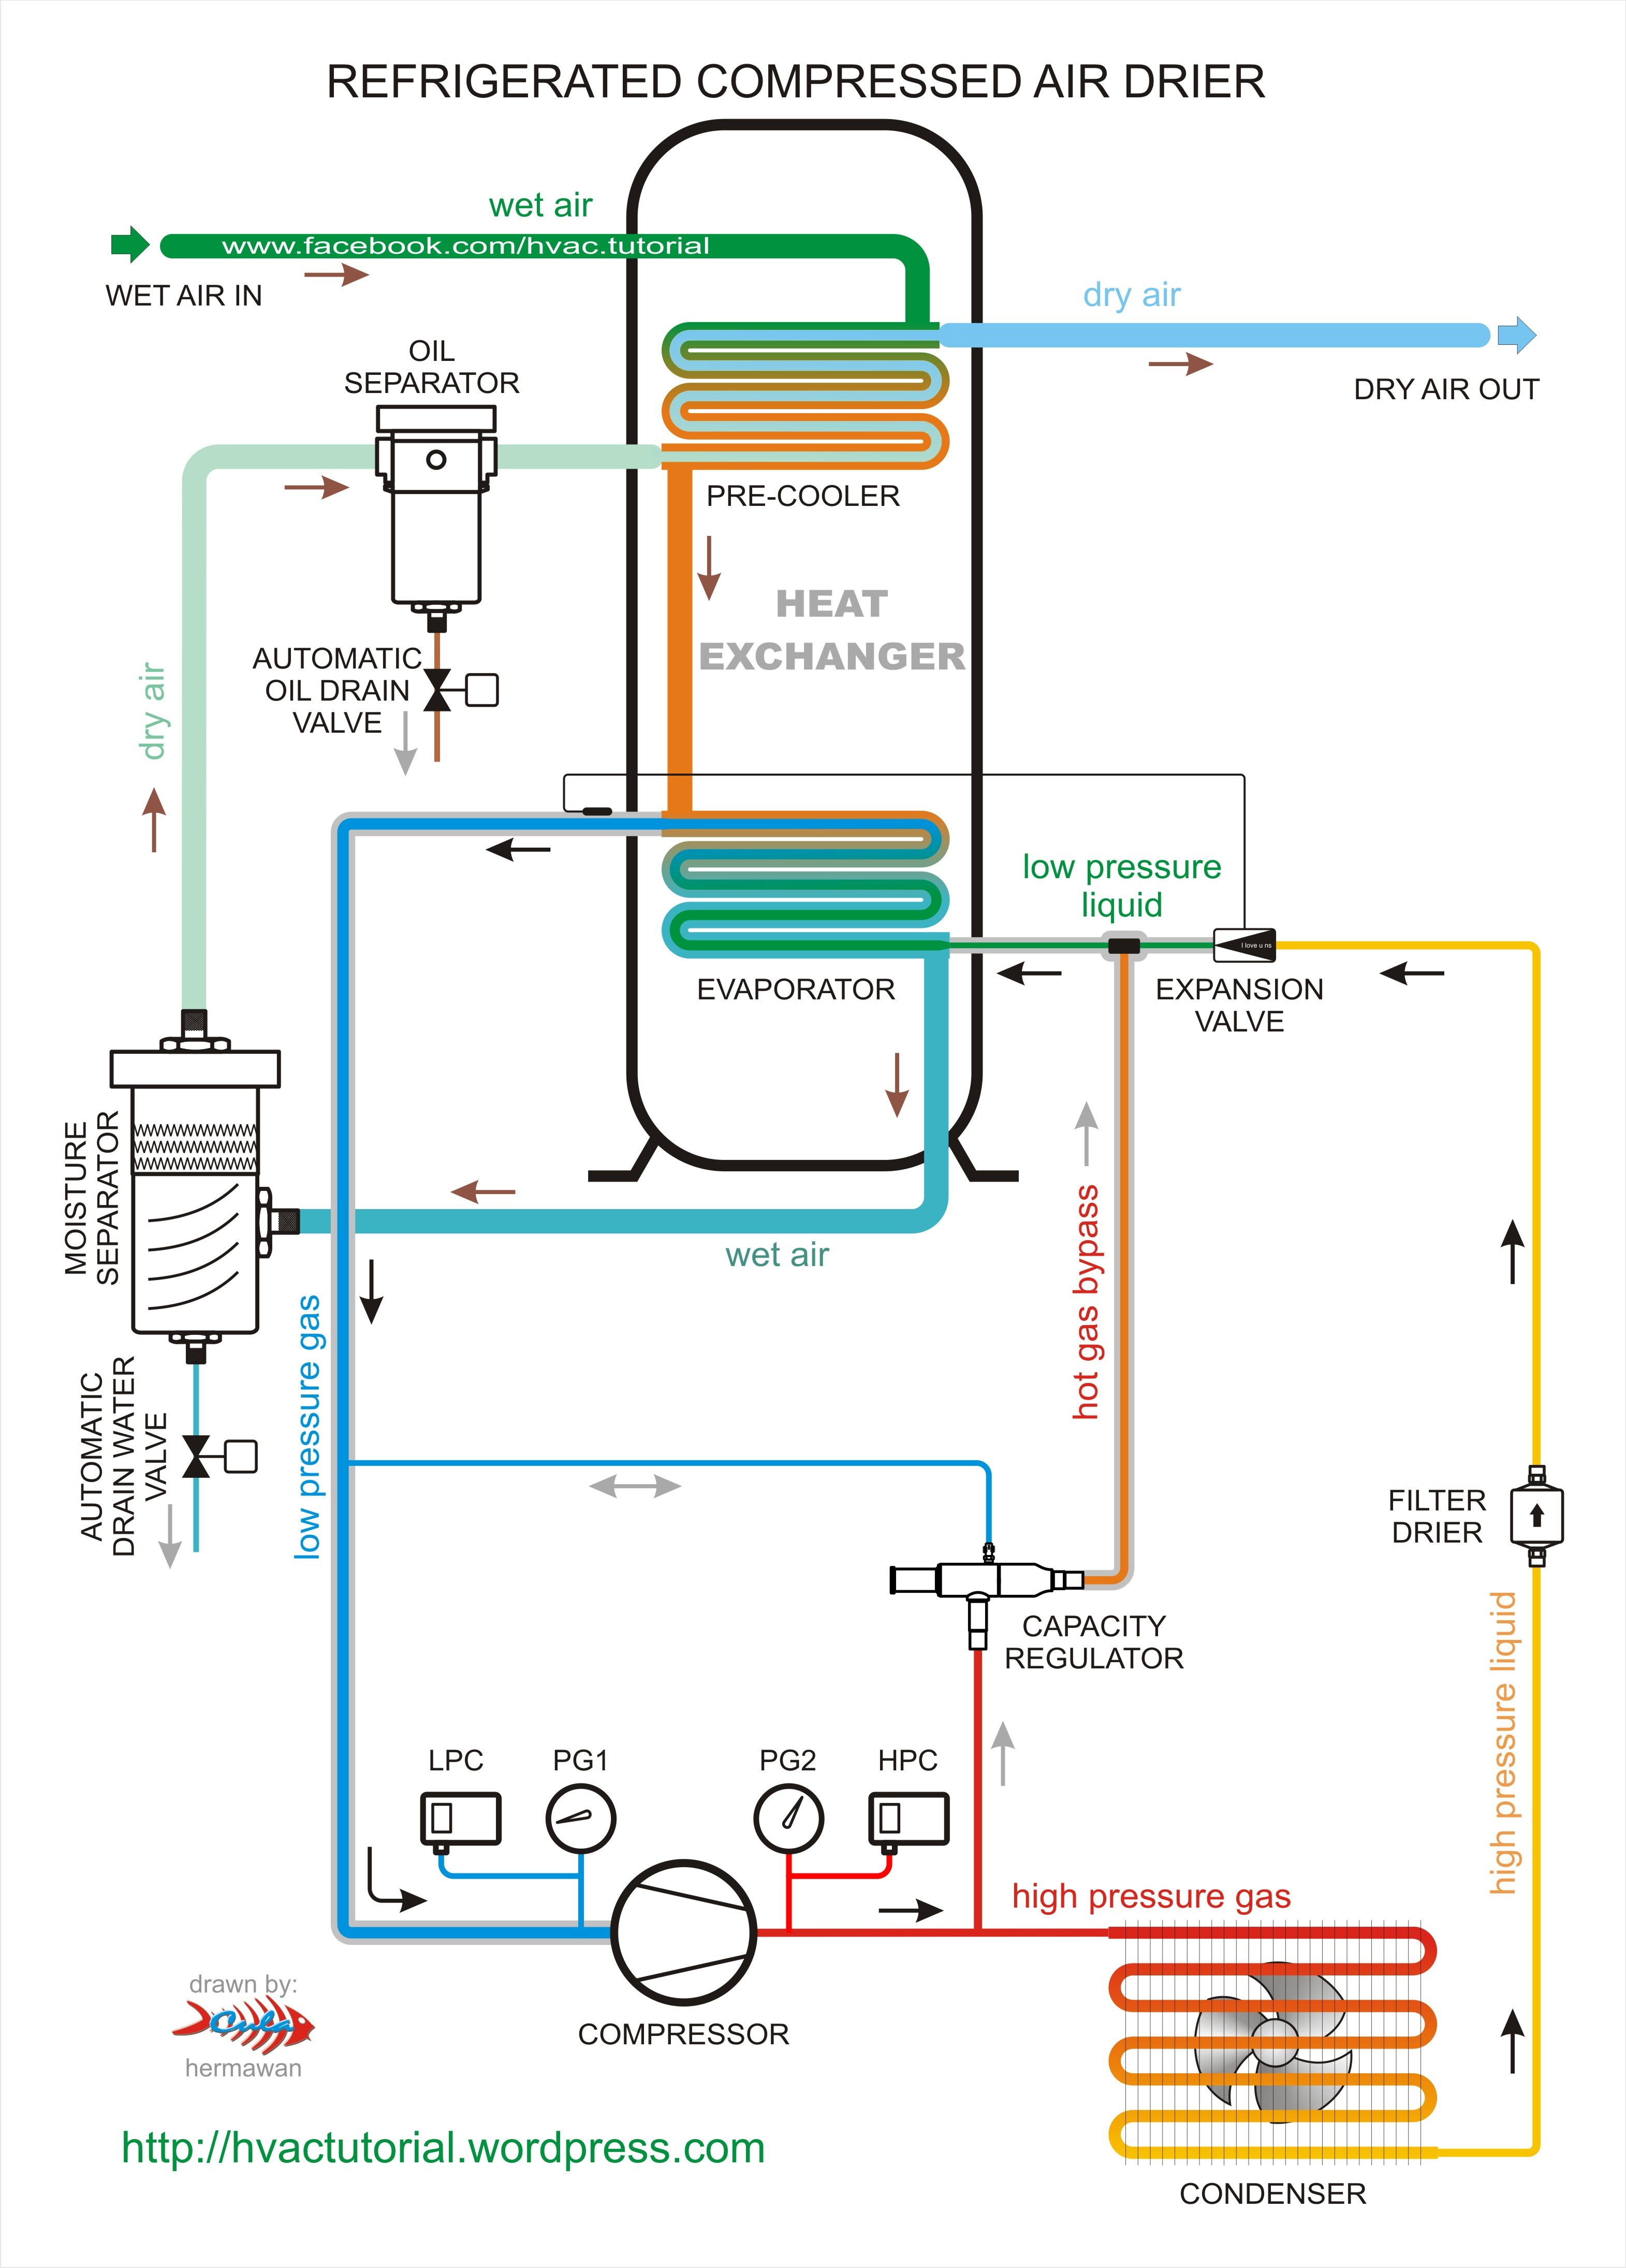 Auto Air Condition System Diagram Amazing Air Conditioner Wiring Diagram Everything You Of Auto Air Condition System Diagram